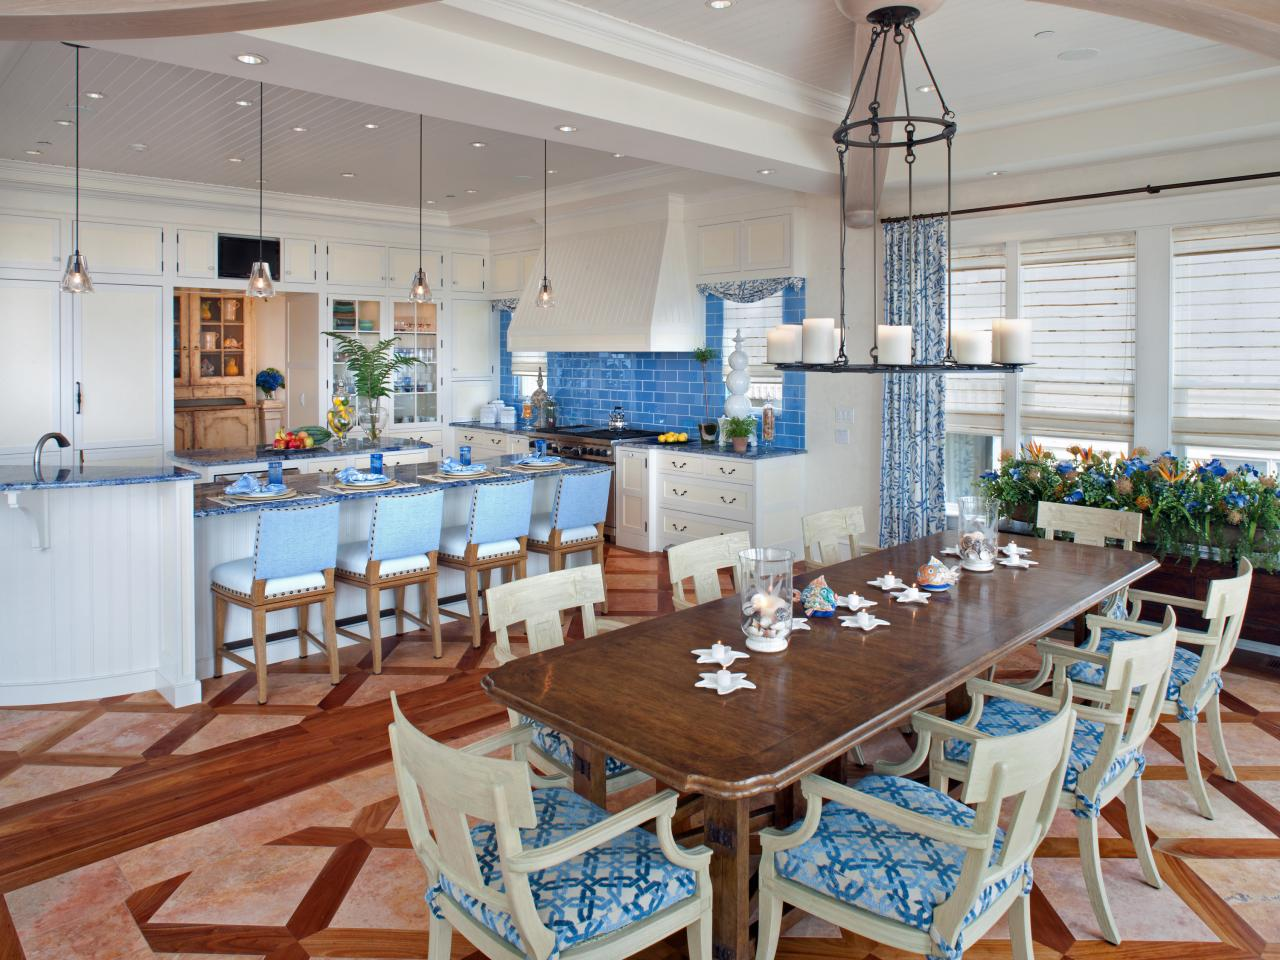 Coastal Kitchen Design Pictures Ideas Tips From HGTV HGTV